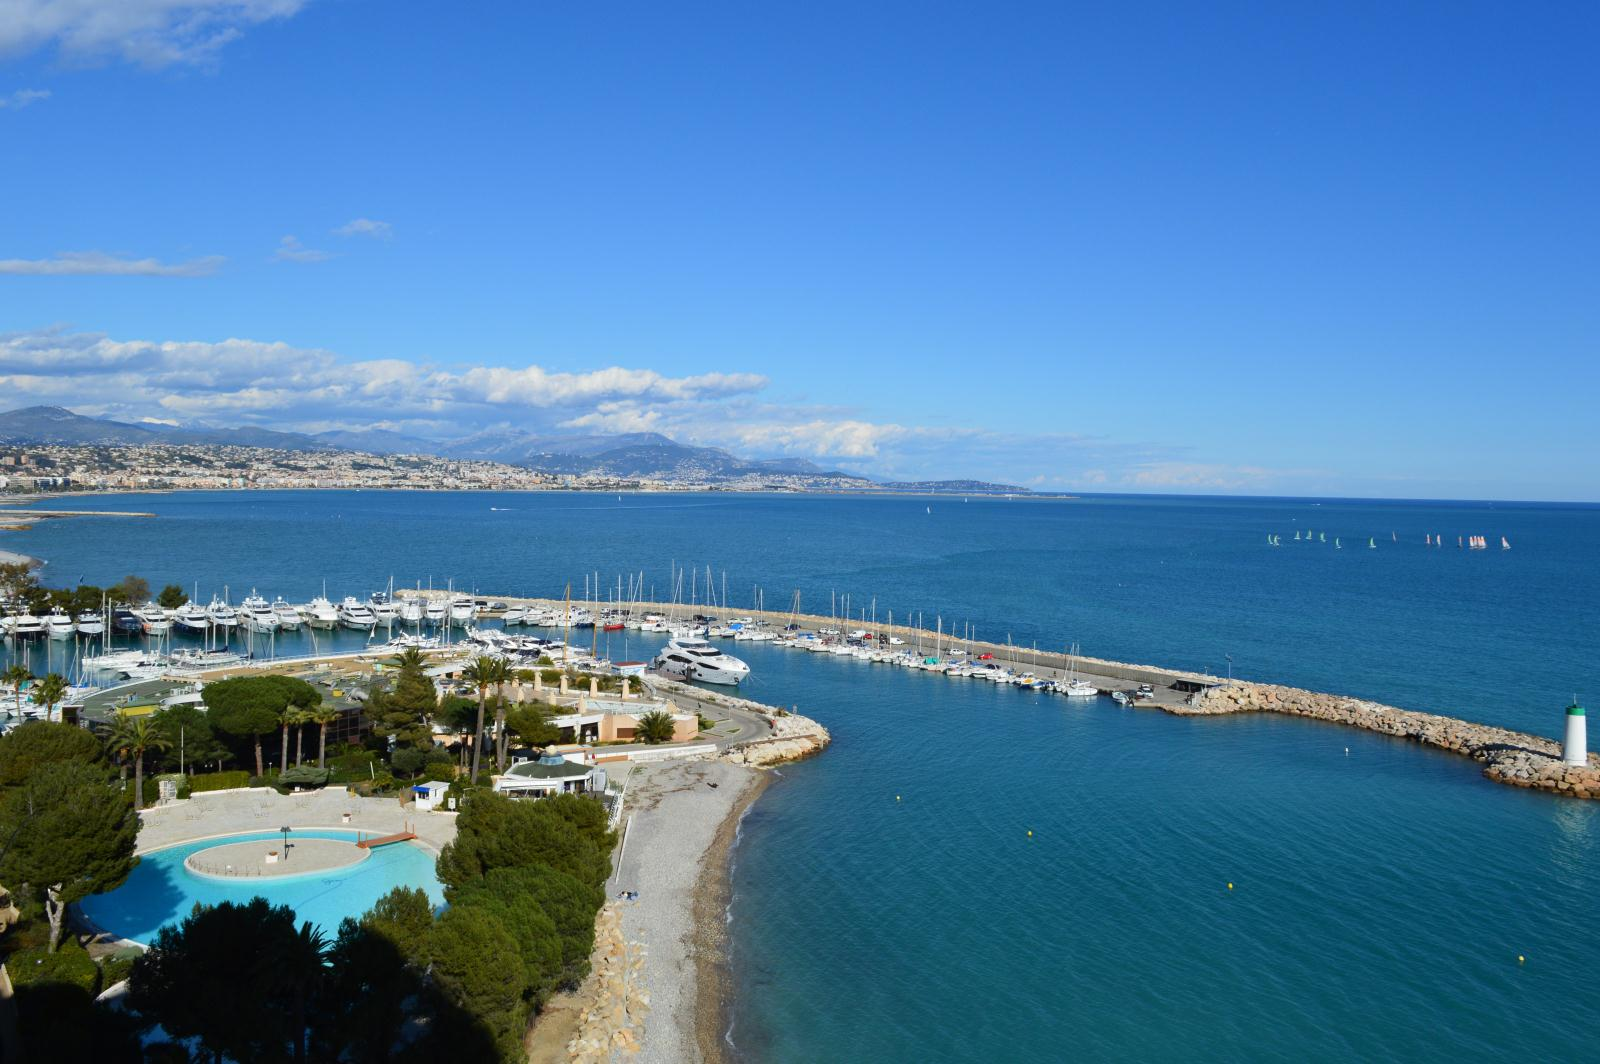 Location marina baie des anges location vacances antibes for Piscine marina baie des anges